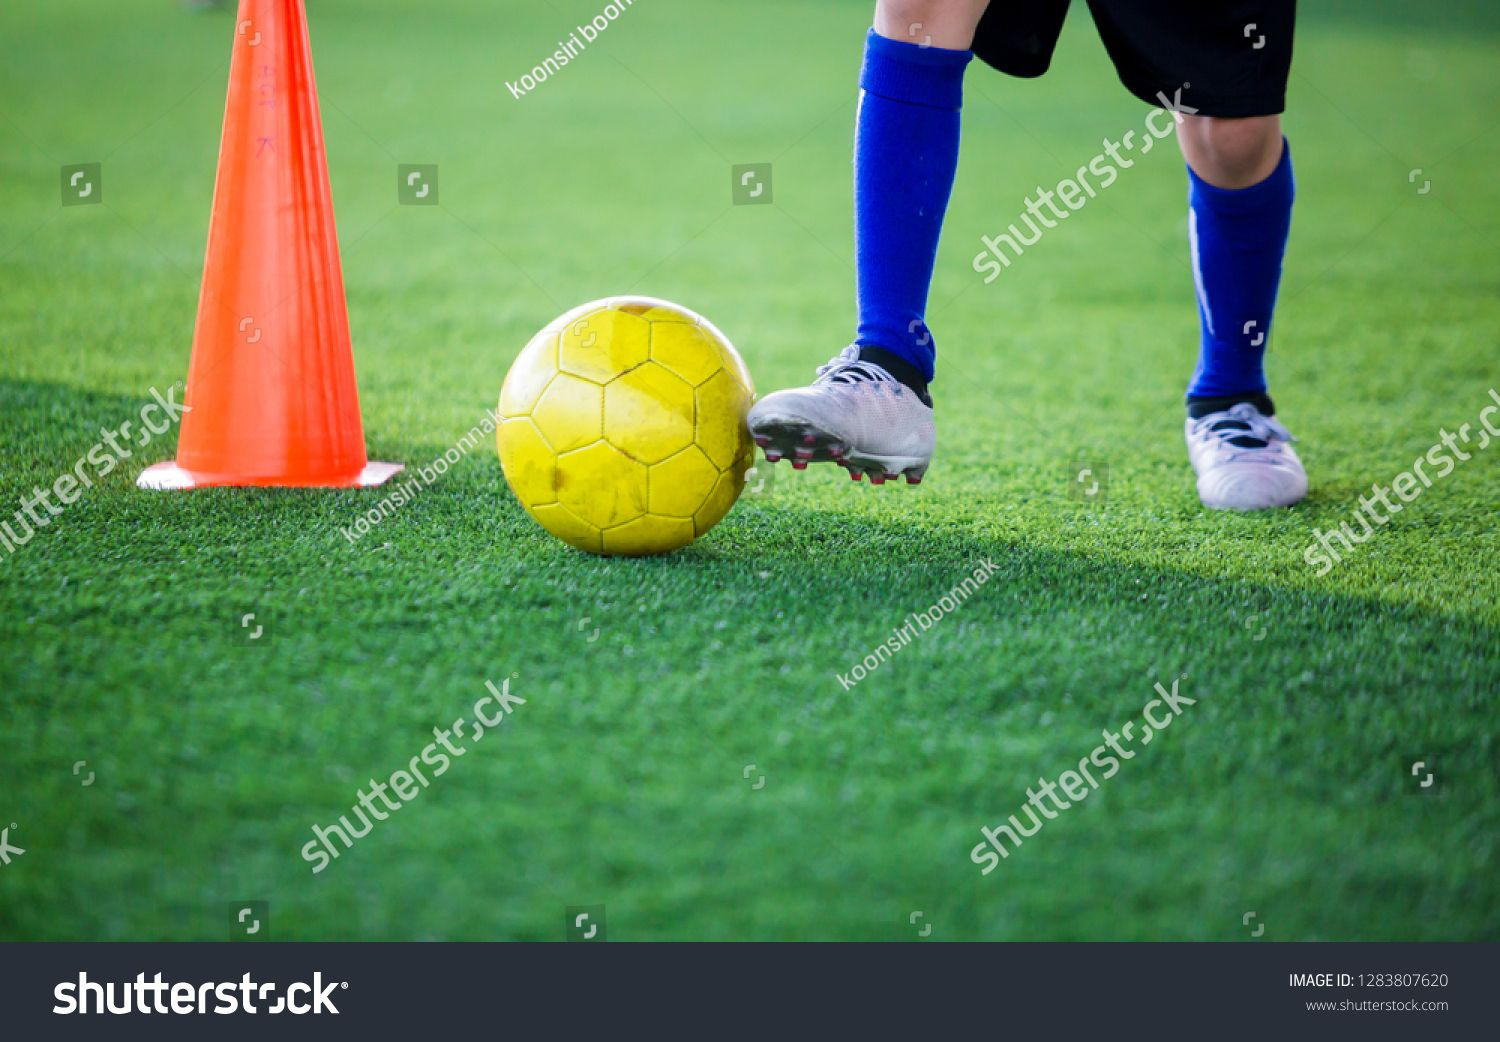 Kid soccer player control ball around cone maker for